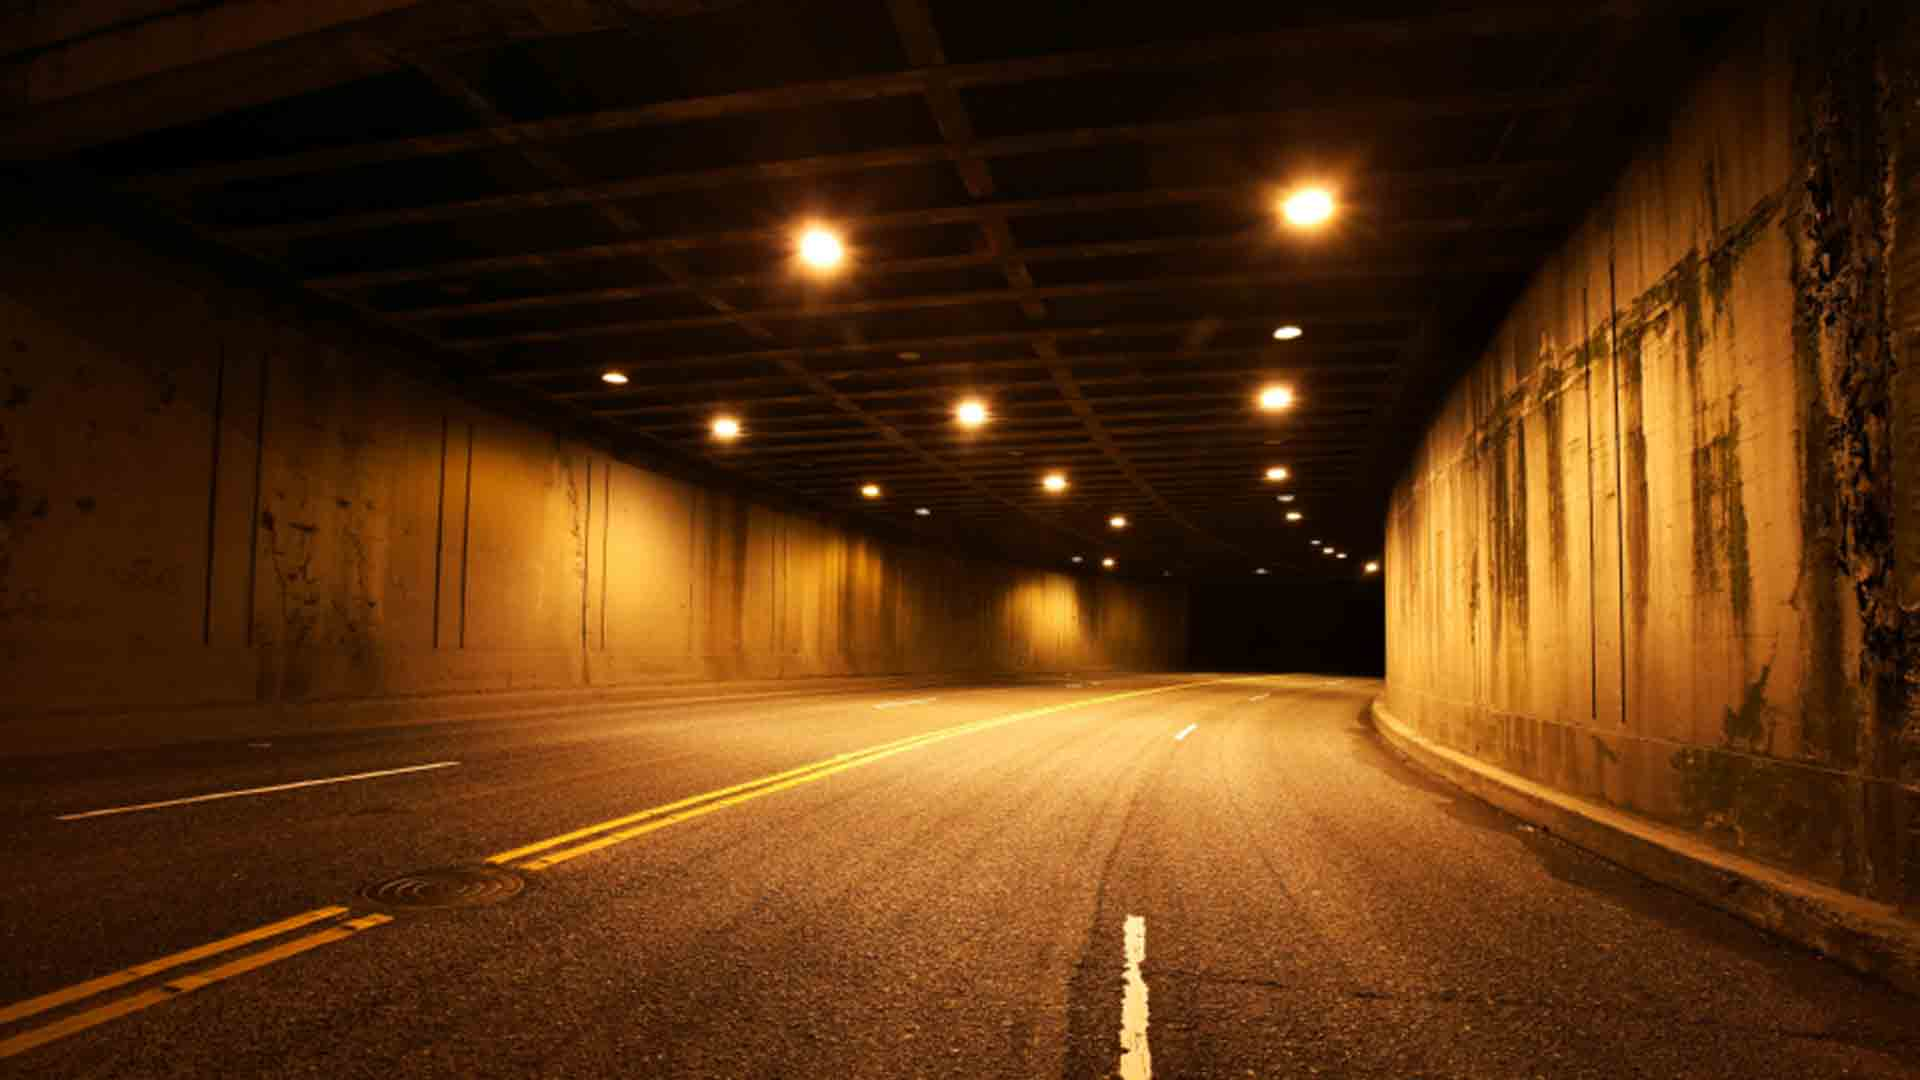 Road Tunnel Wallpaper HD